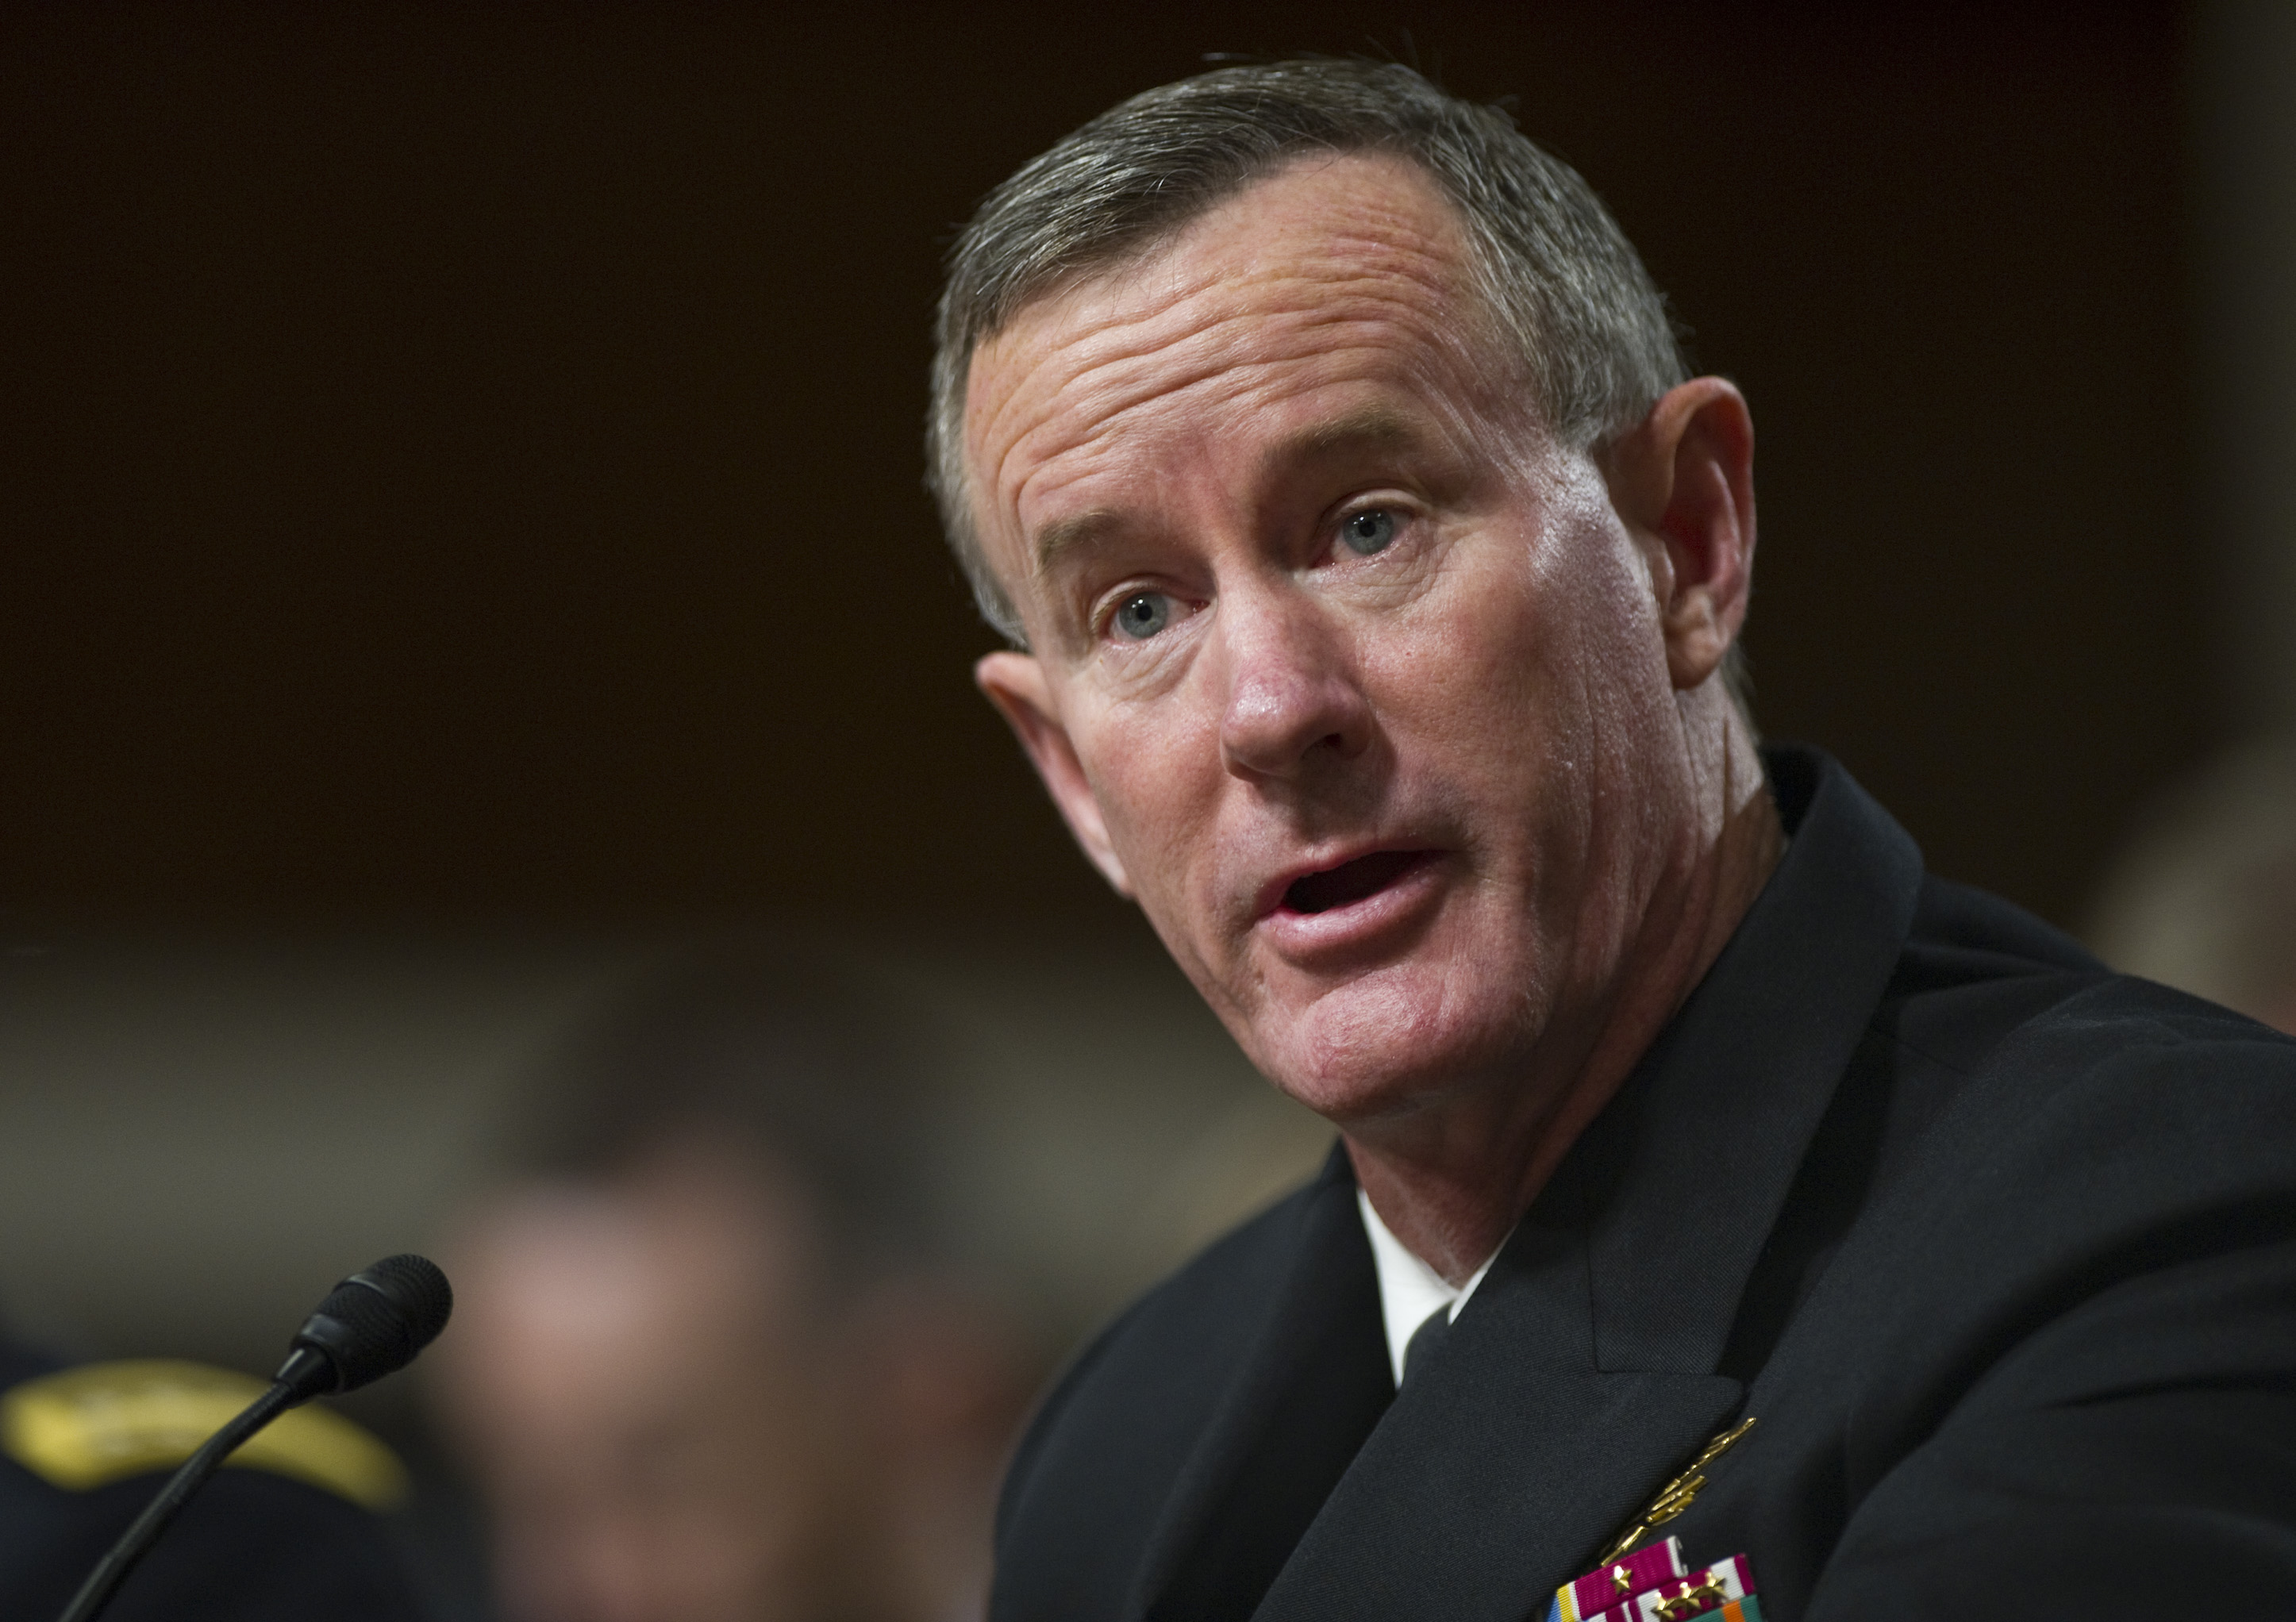 June 28: Vice Adm. William H. McRaven, nominated to be admiral and commander, U.S. Special Operations Command; during the Senate Armed Services hearing on his nomination.